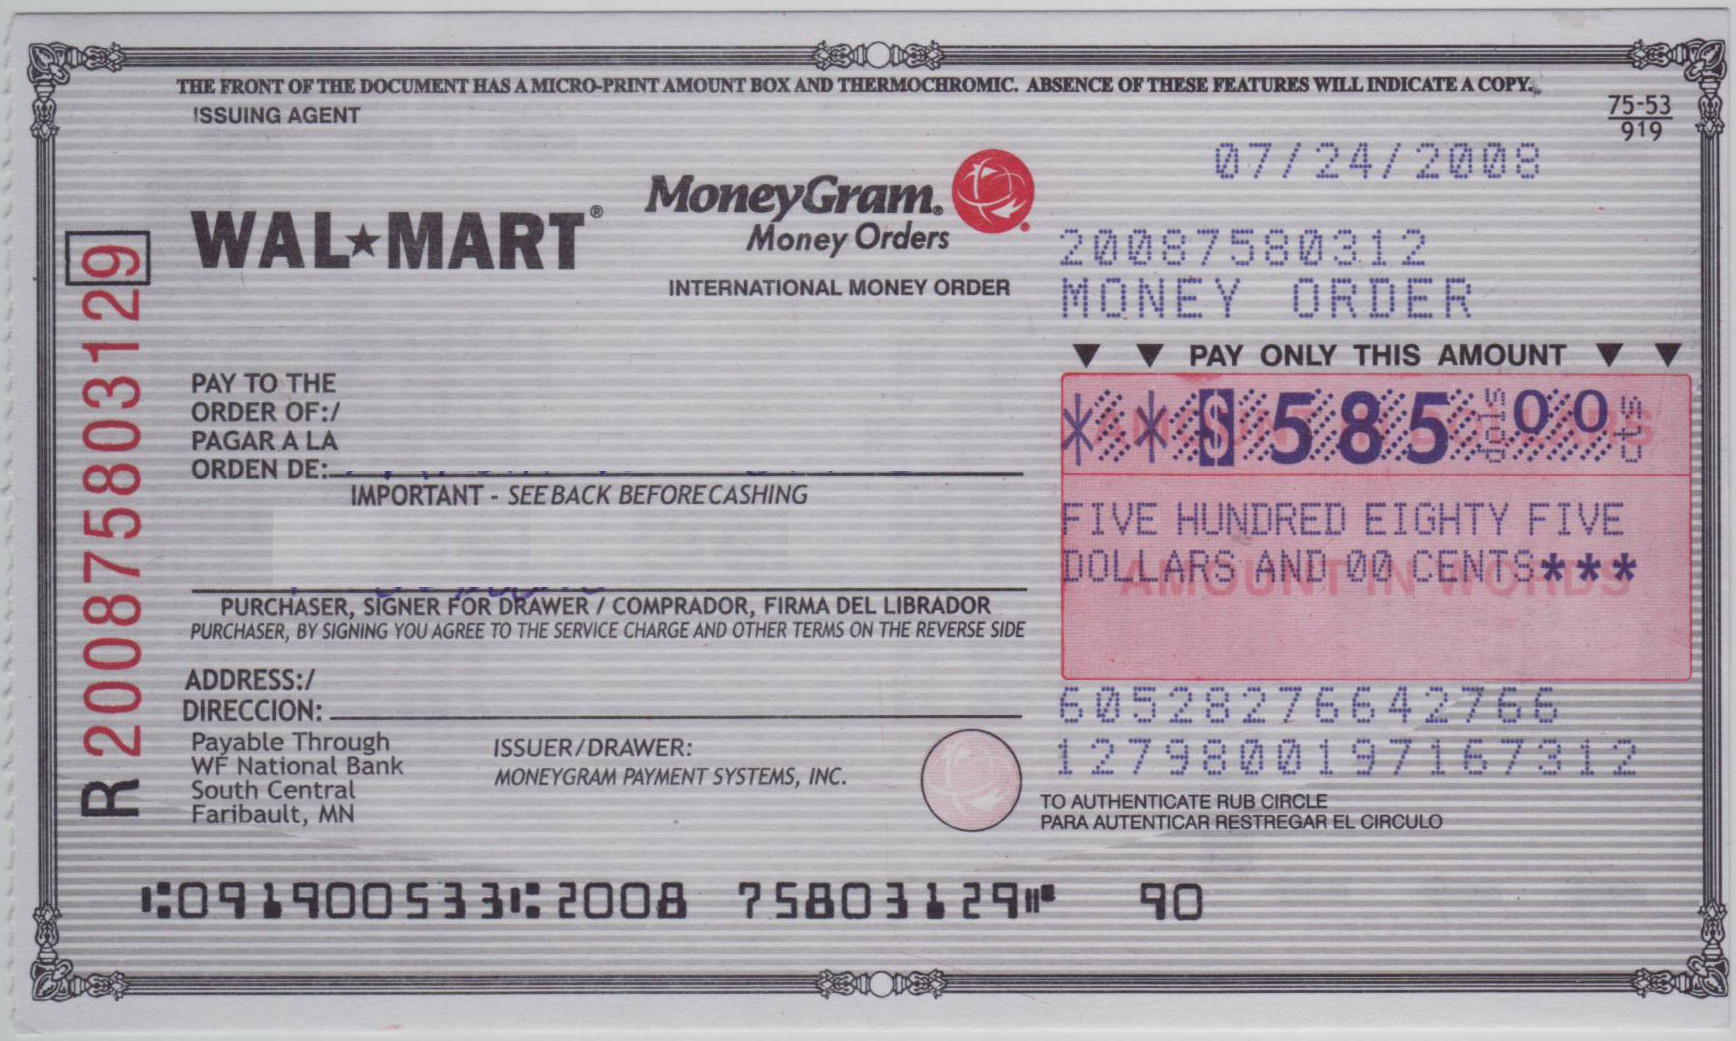 how to fill out a moneygram money order thorough articles on a variety of topics